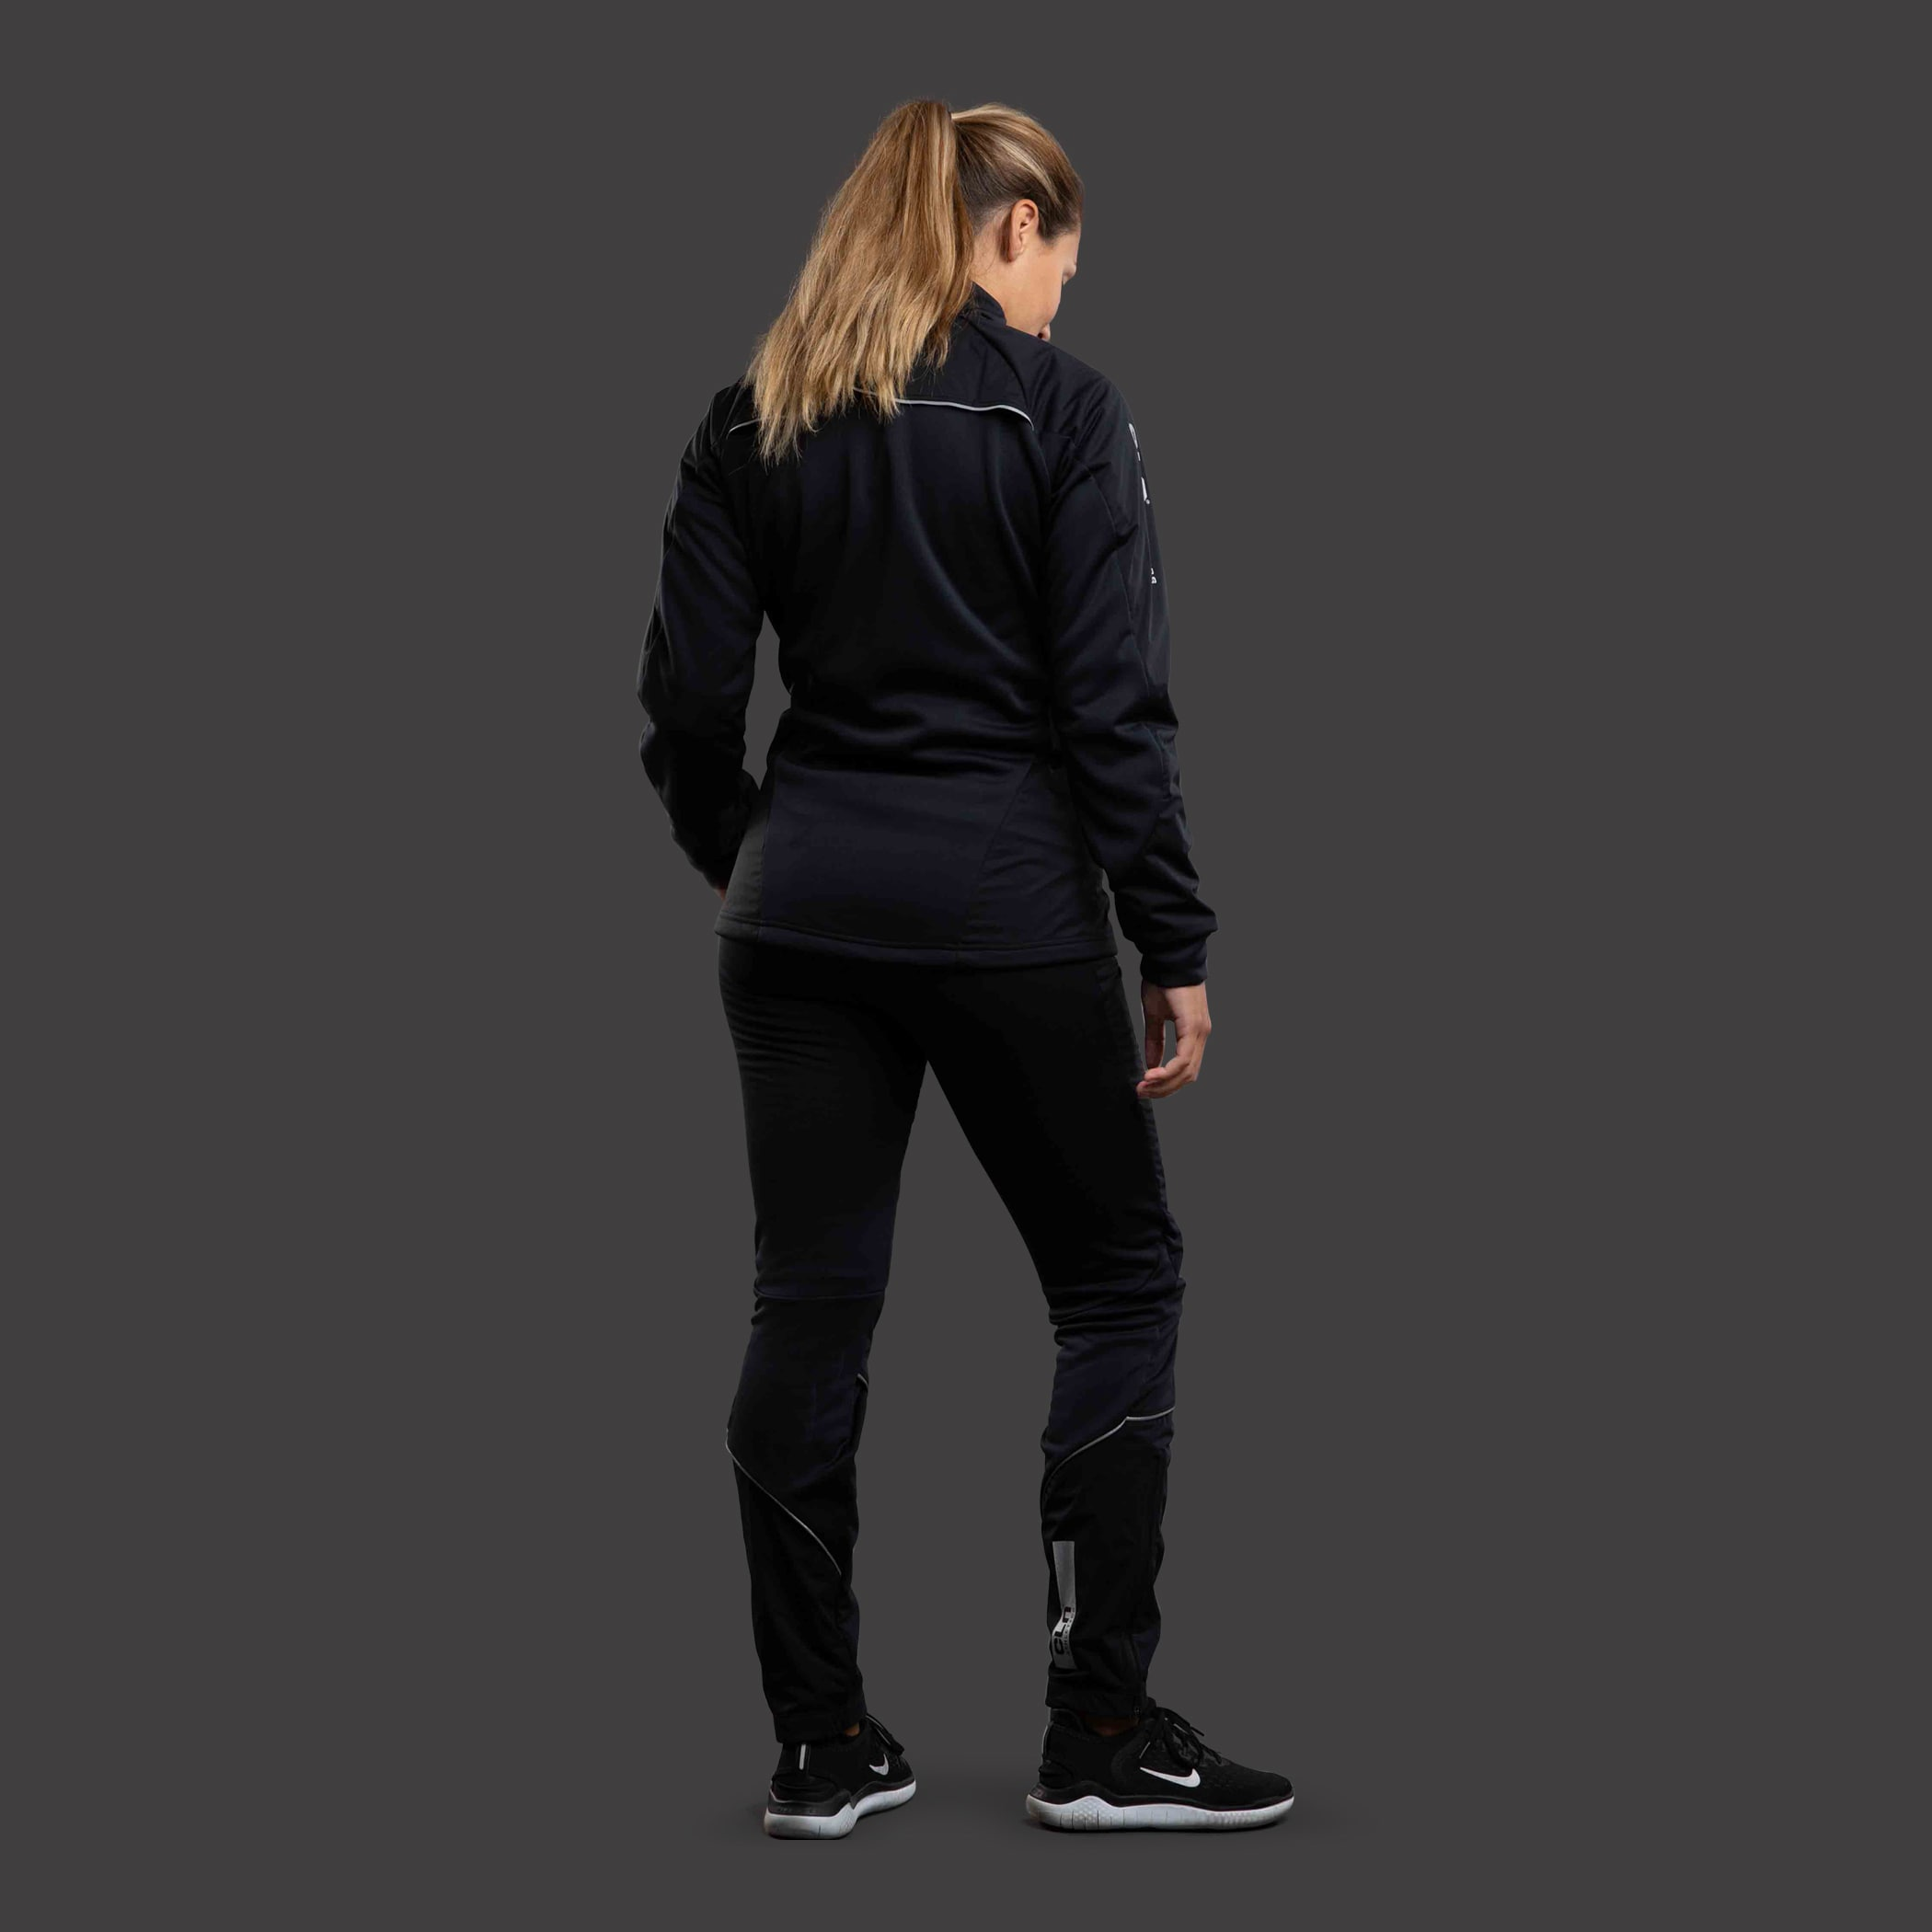 CLN Lova ws jacket Black